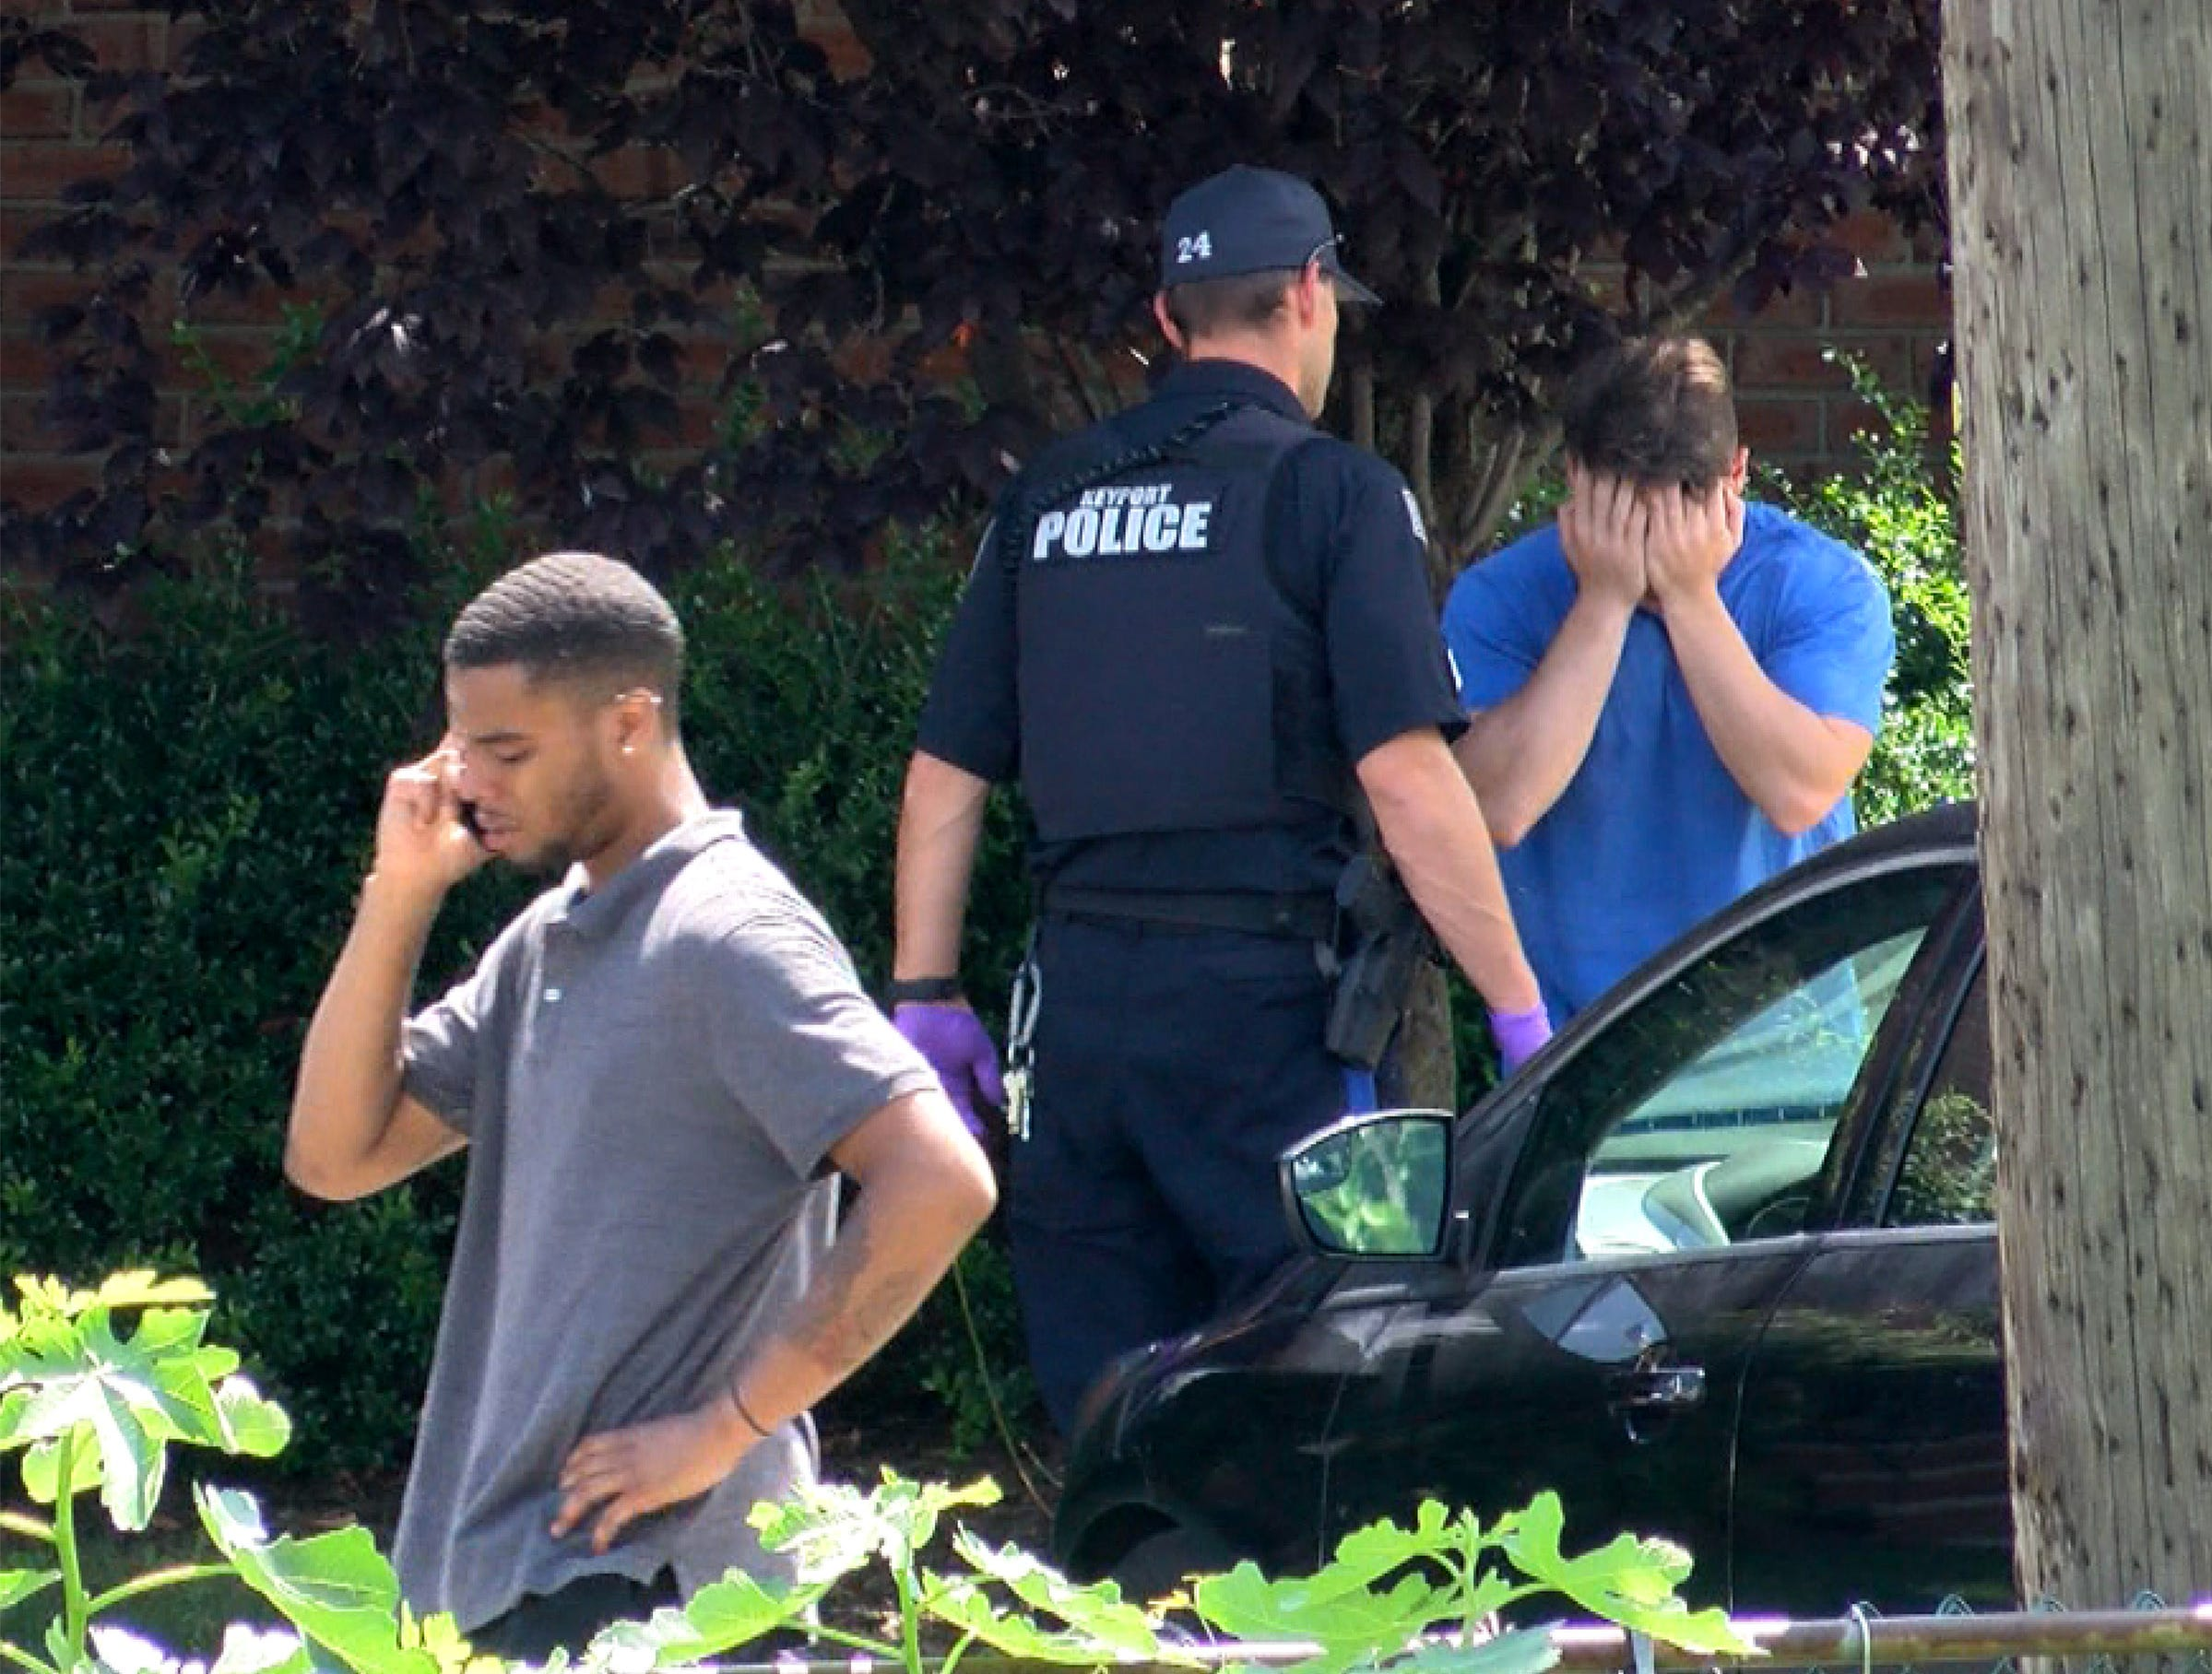 Relatives arrive along Center Street Thursday afternoon, August 9, 2018, where a man was apparently shot.